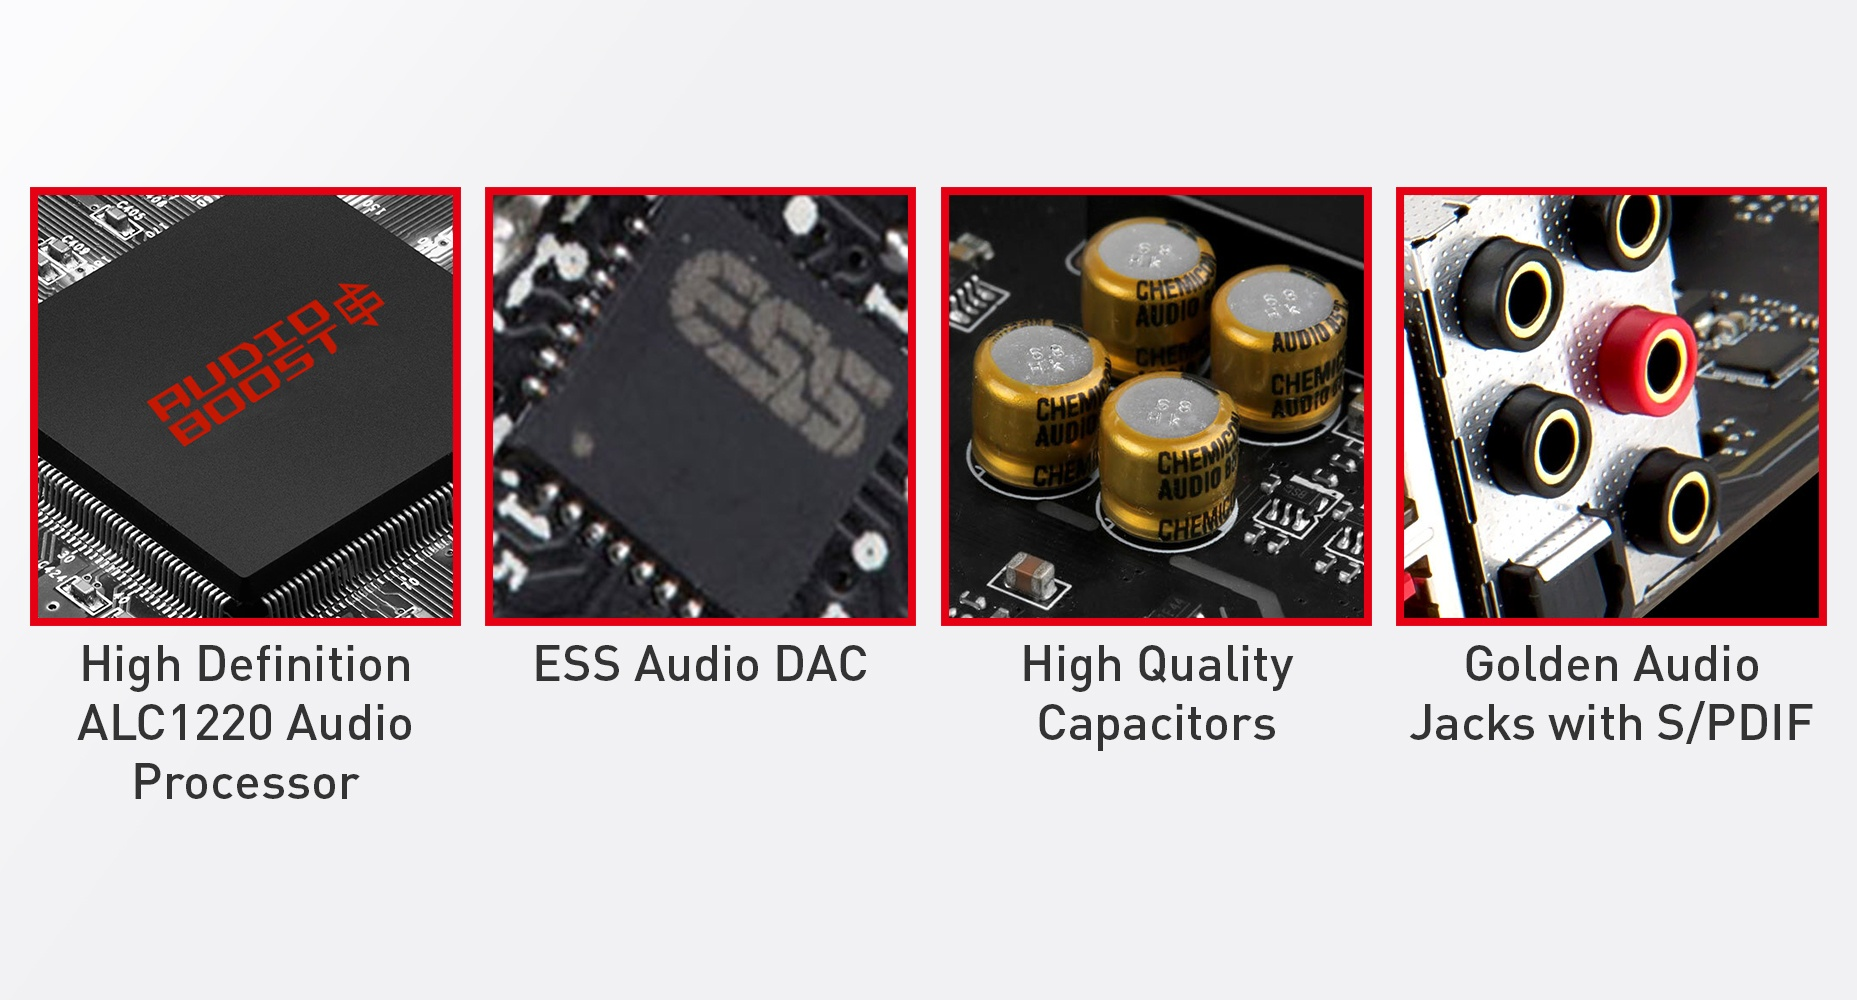 audio_boost of the motherboard